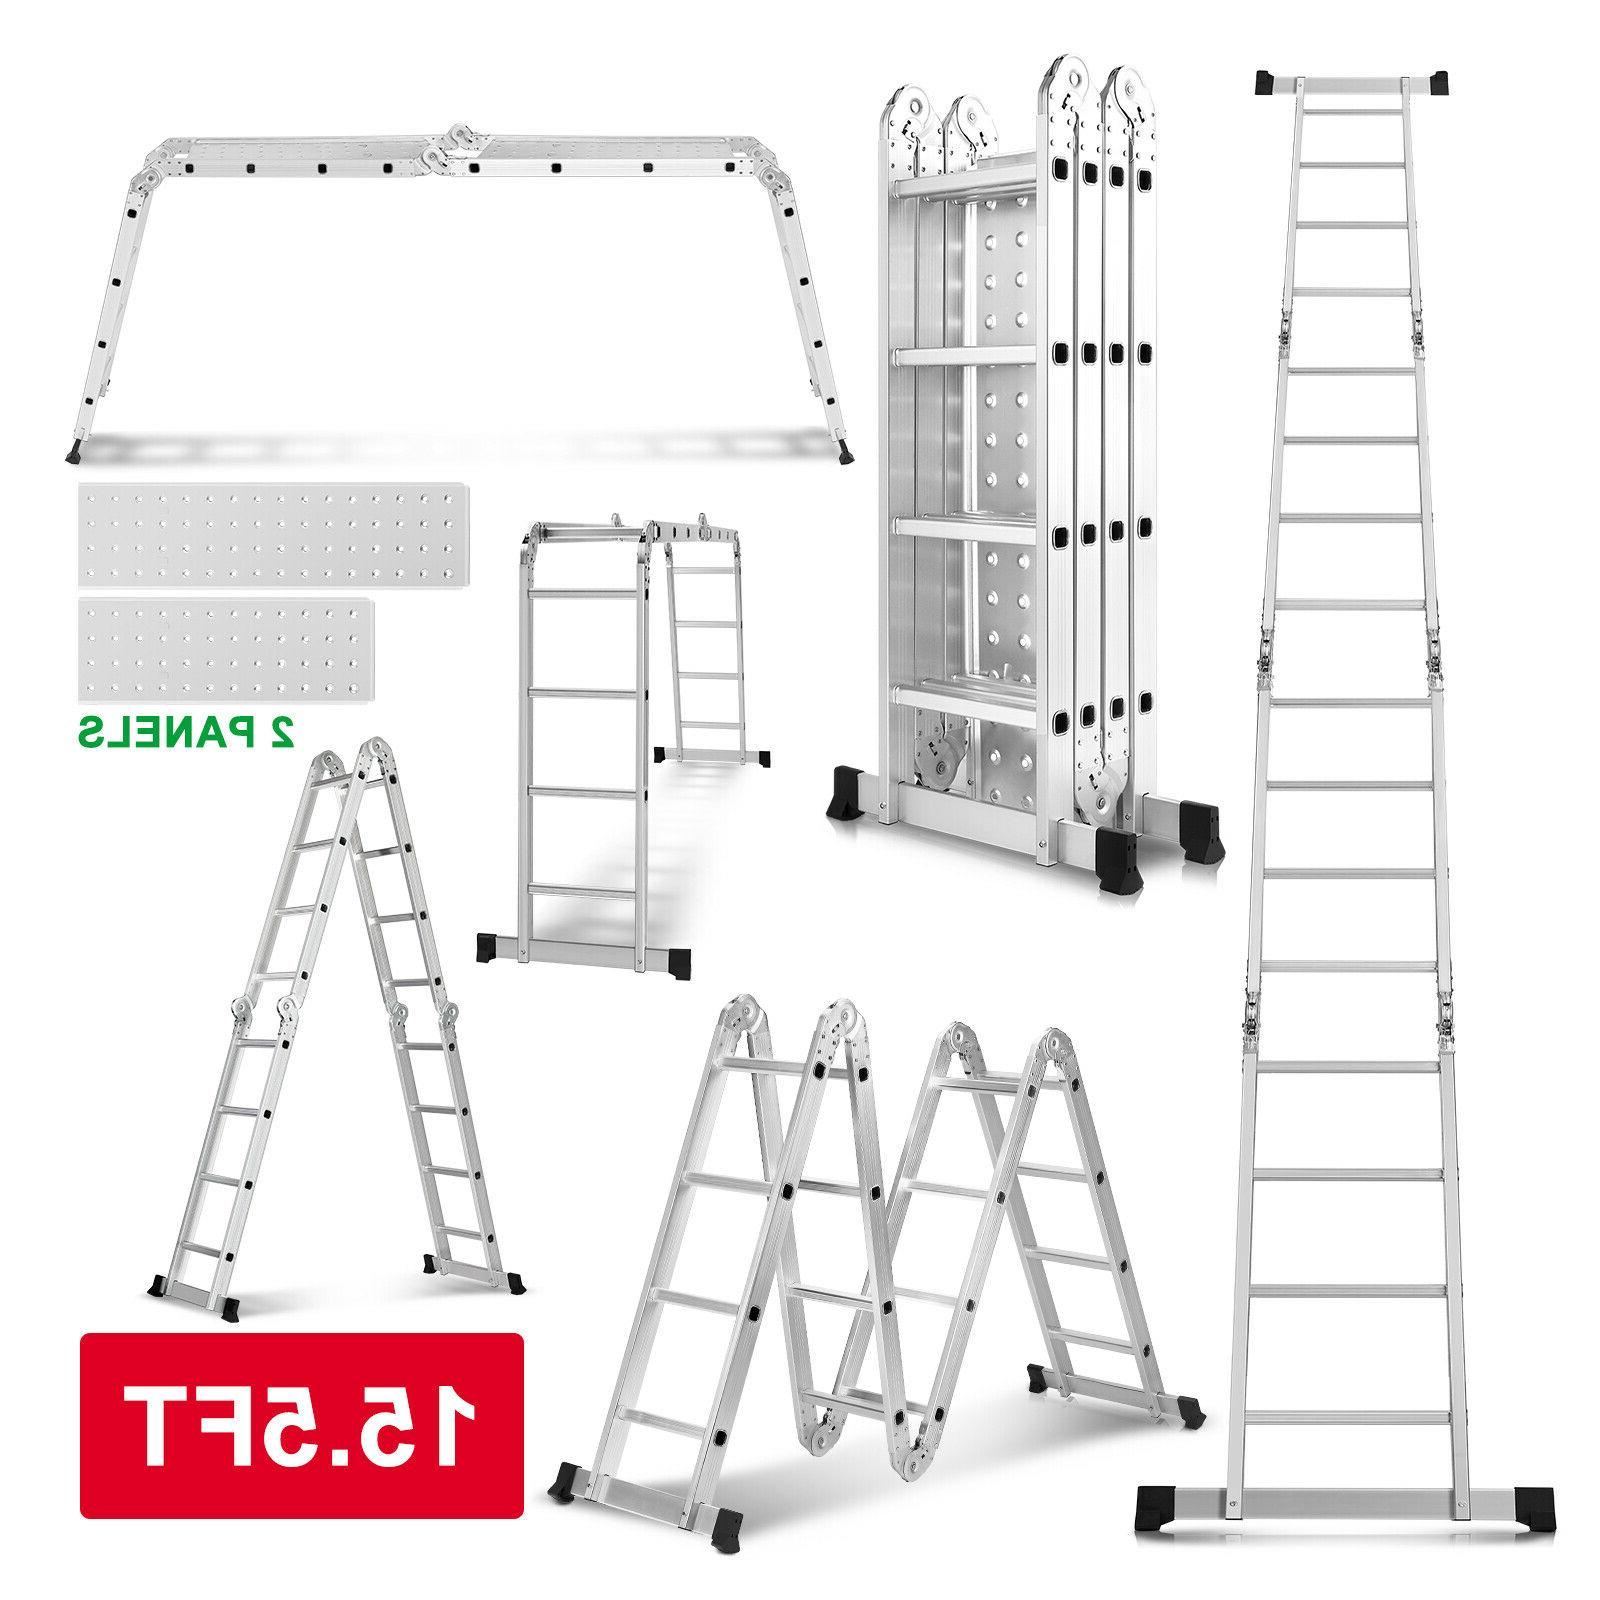 New 15.5/19.5FT Step Ladder Heavy Duty